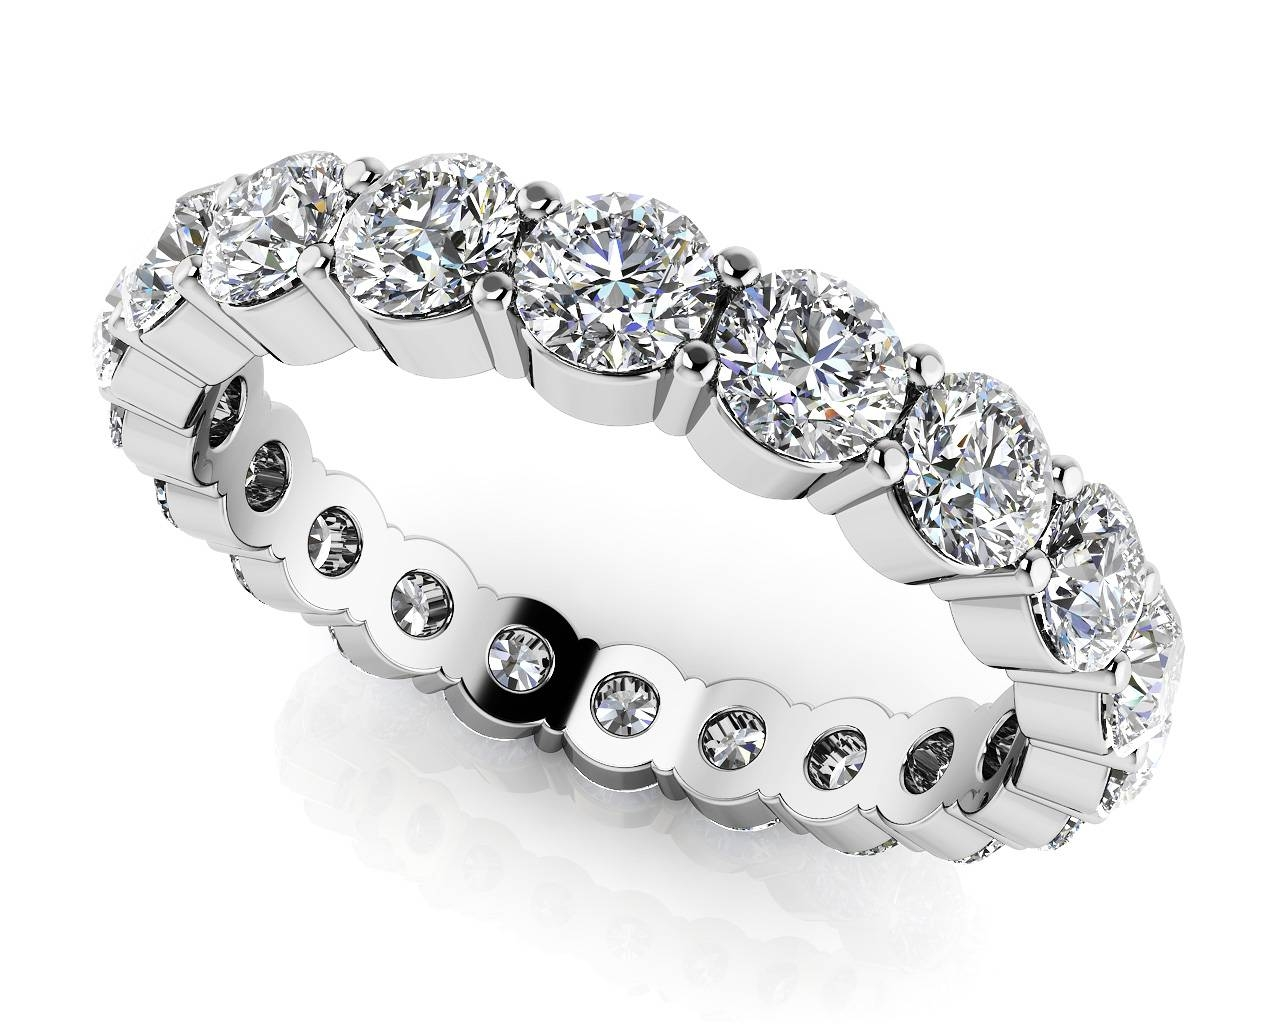 Design Your Own Diamond Anniversary Ring & Eternity Ring With Regard To Most Recent Anniversary Rings For Sale (View 6 of 25)